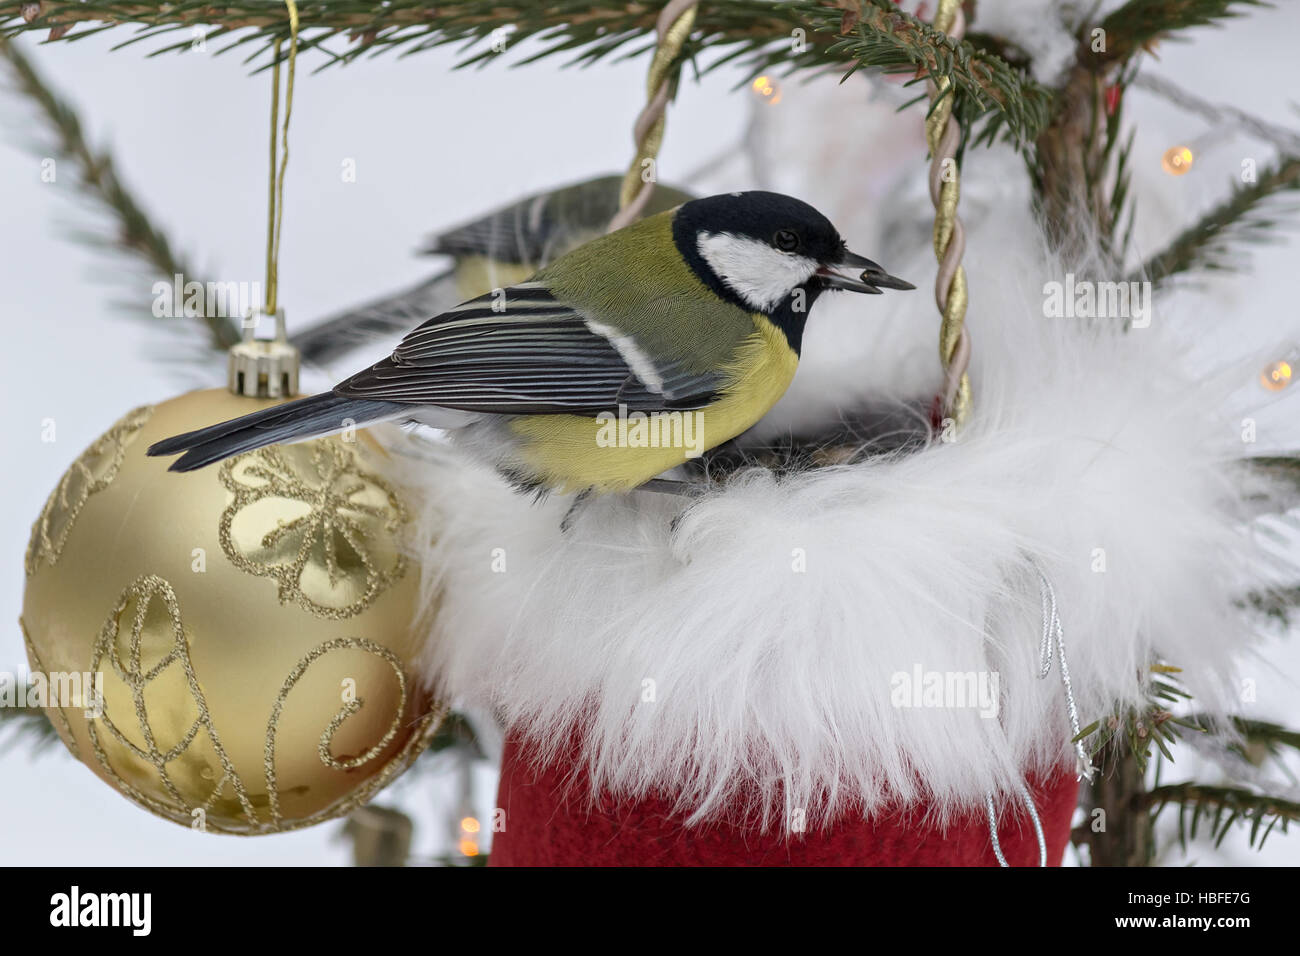 Titmouse Sitting On A Decorated Christmas Tree